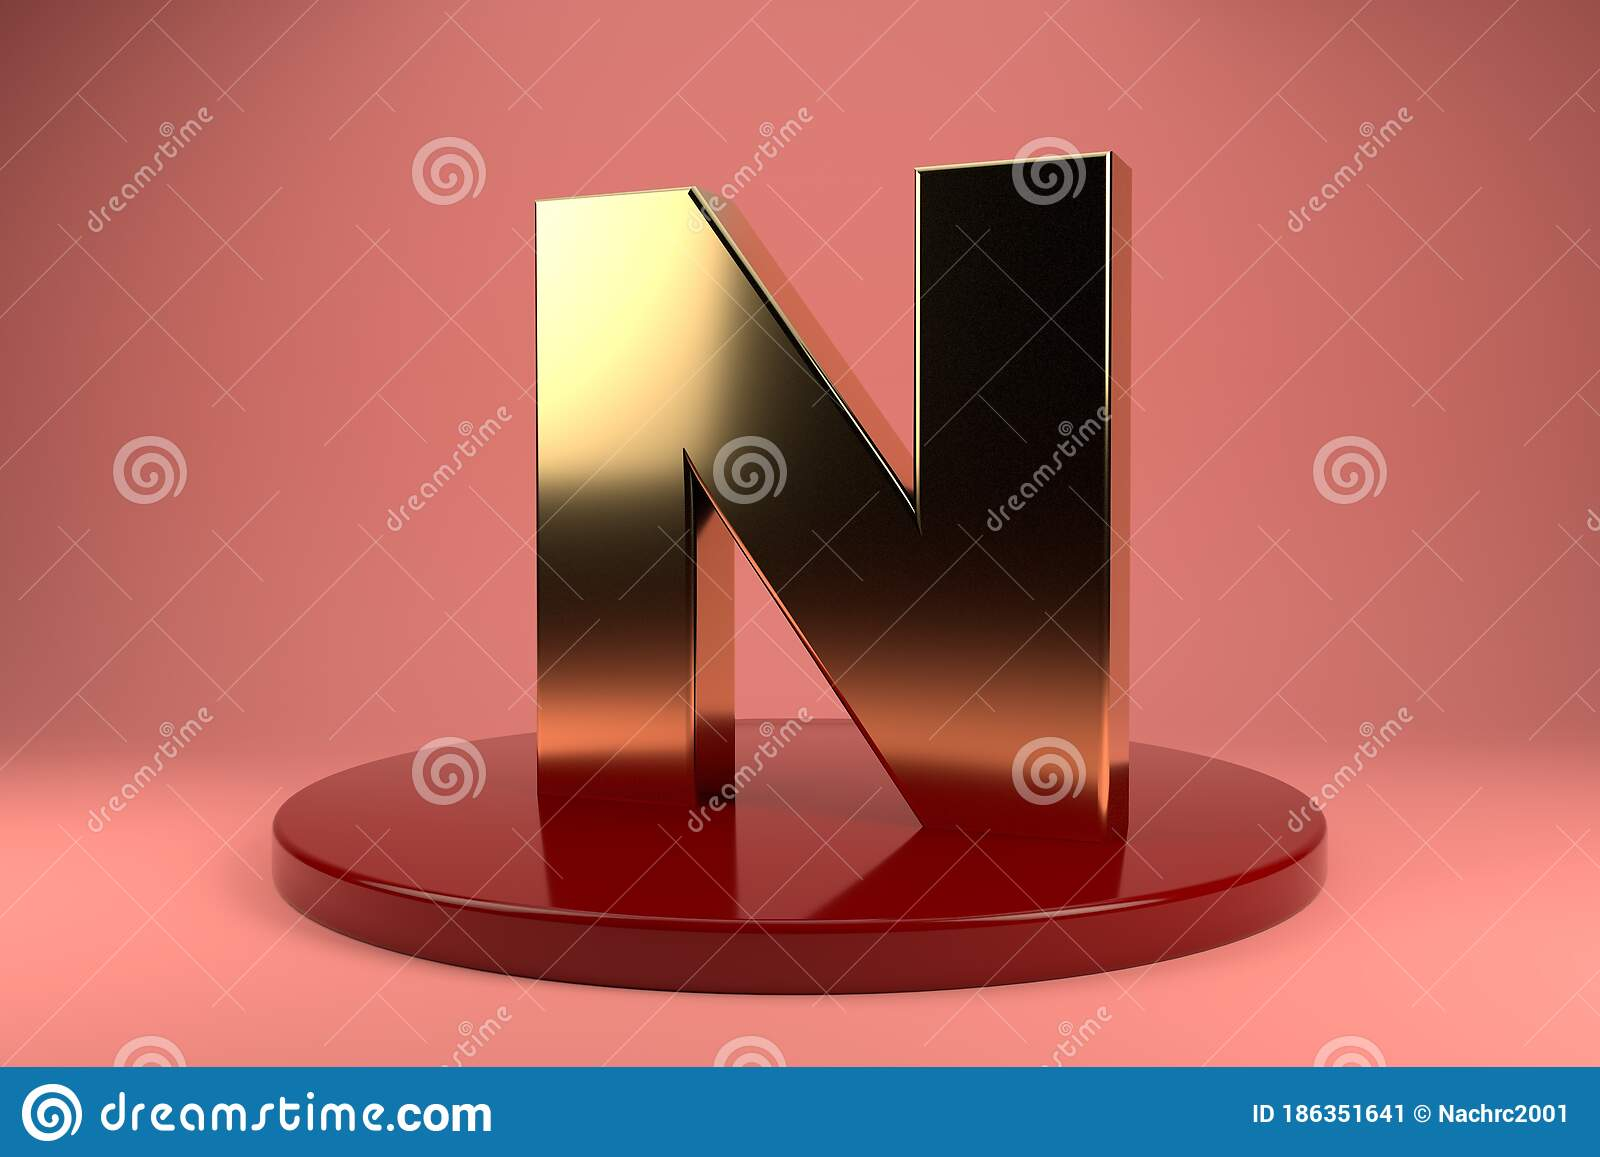 Golden Letter N Uppercase Wallpaper 3d Rendering 3d Illustrator Stock Illustration Illustration Of Business Artistic 186351641